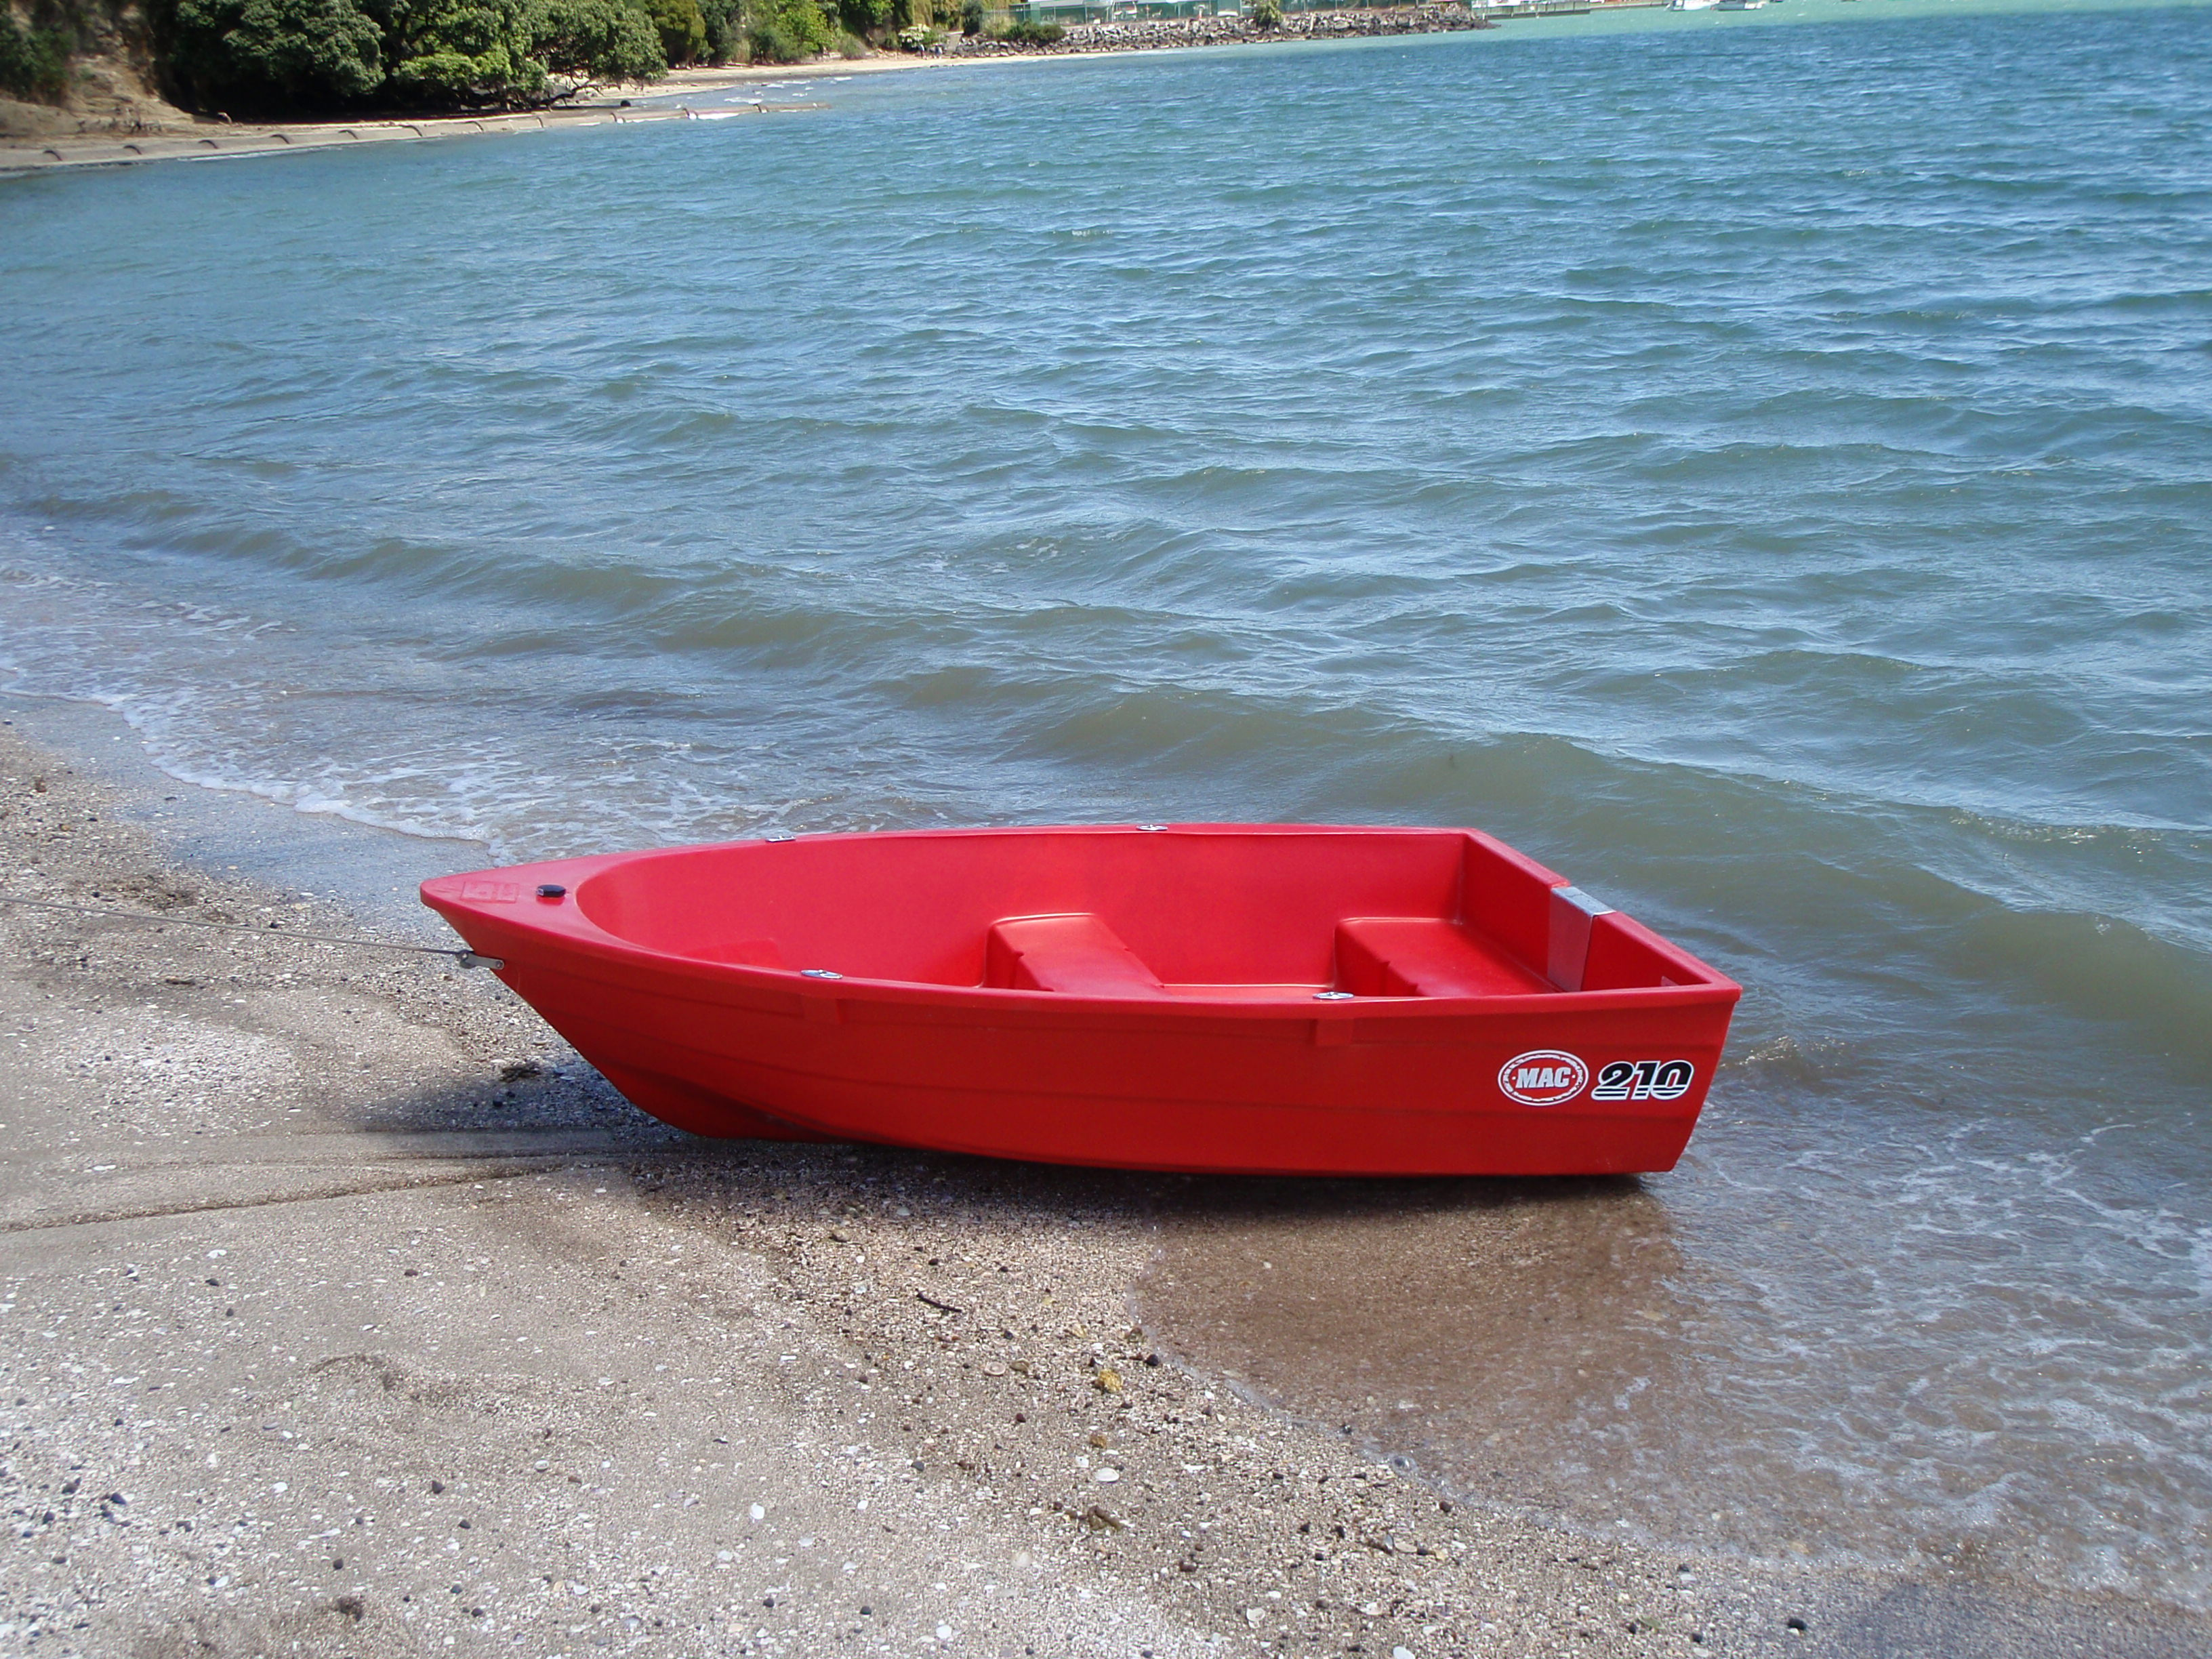 Mac 210 Dinghy